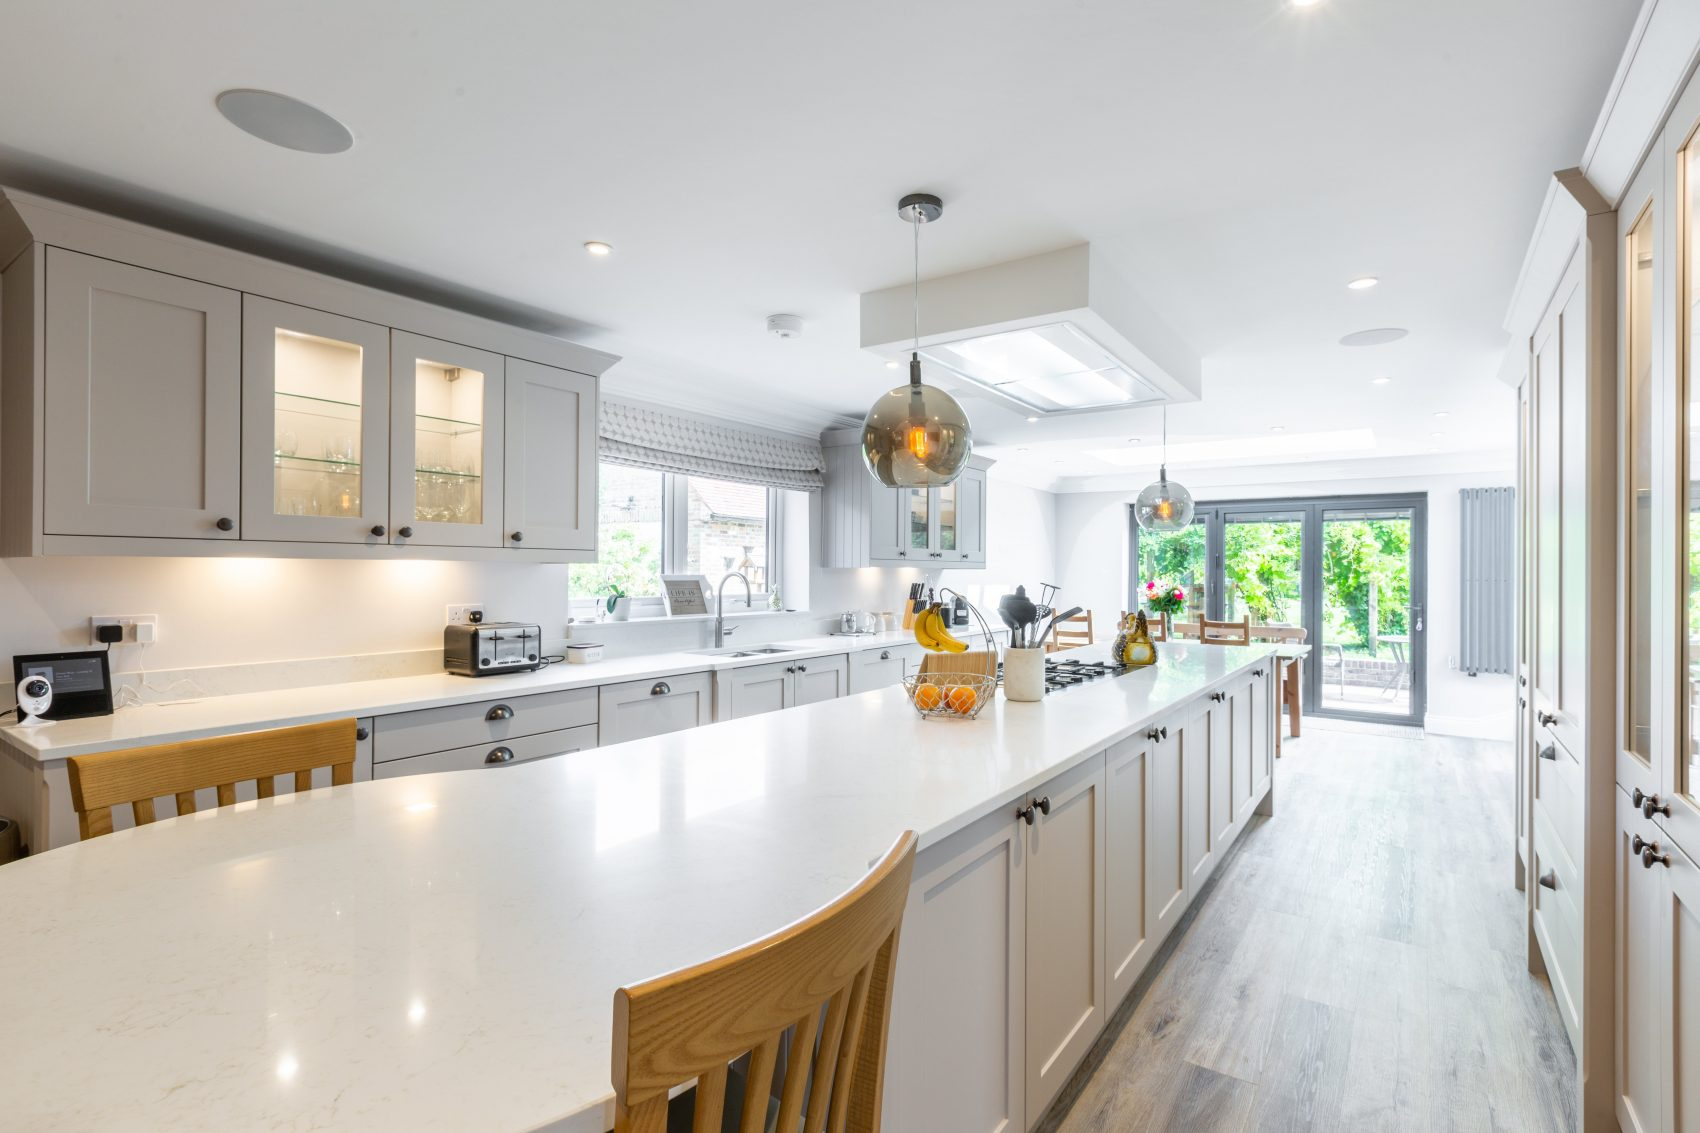 Classic shaker kitchen with large kitchen island